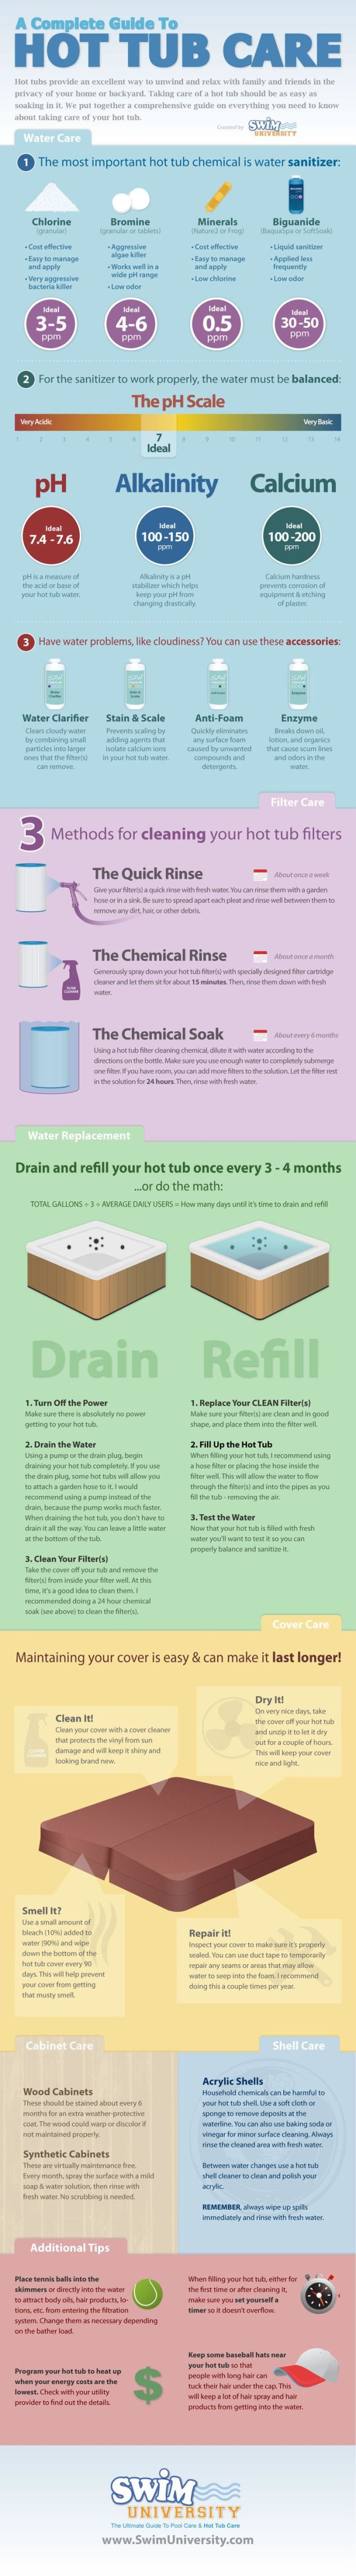 Hot Tub Infographic